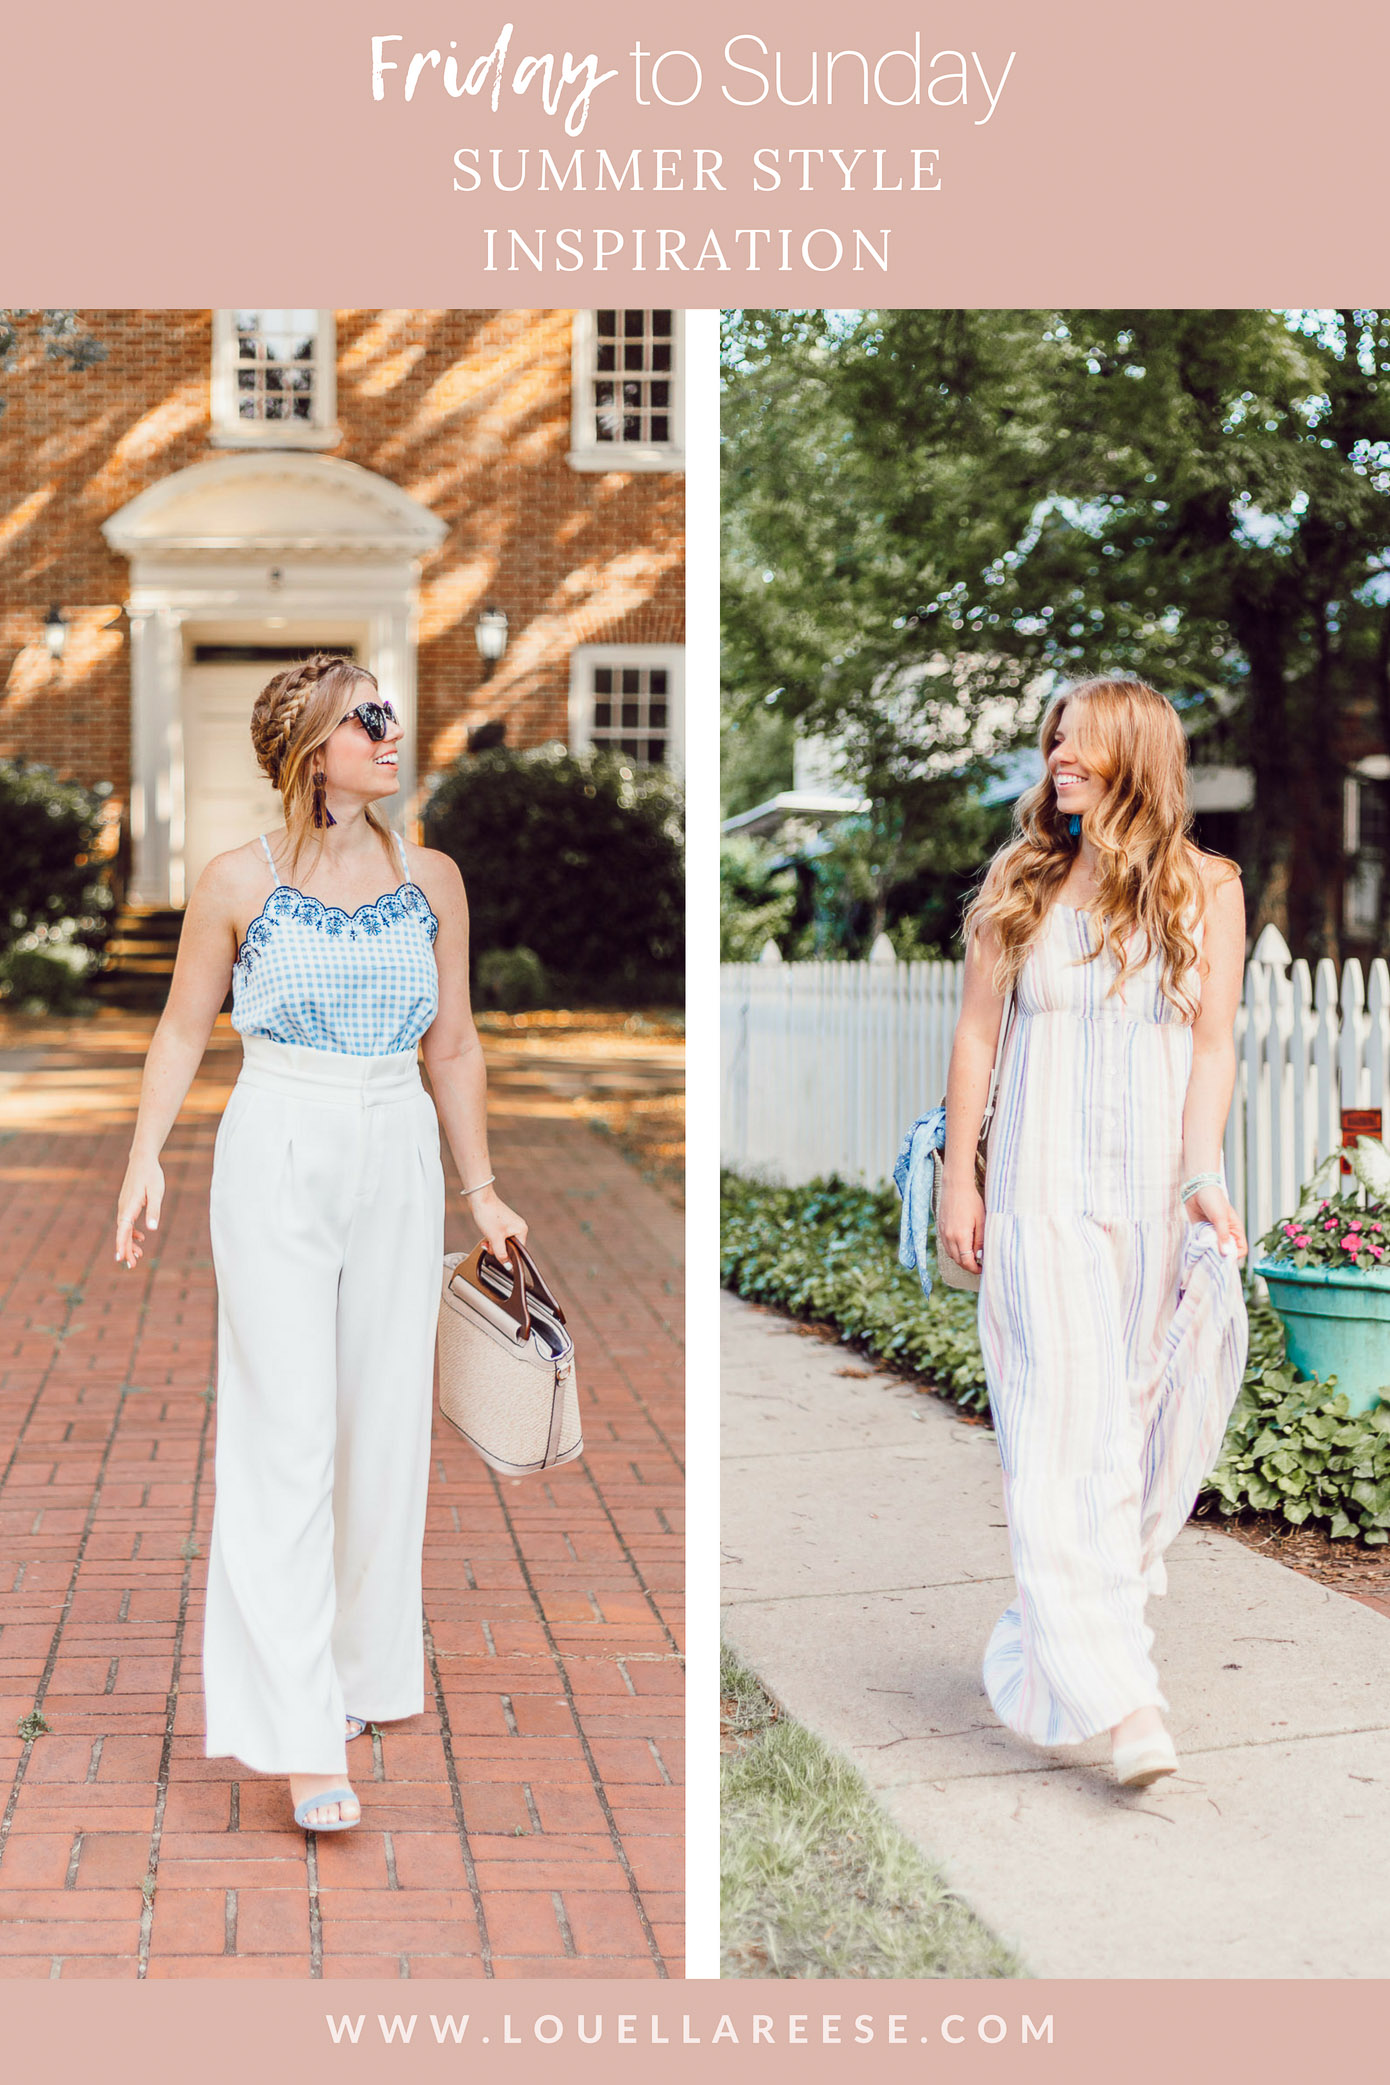 Summer Weekend Style from Friday to Sunday featured by Louella Reese